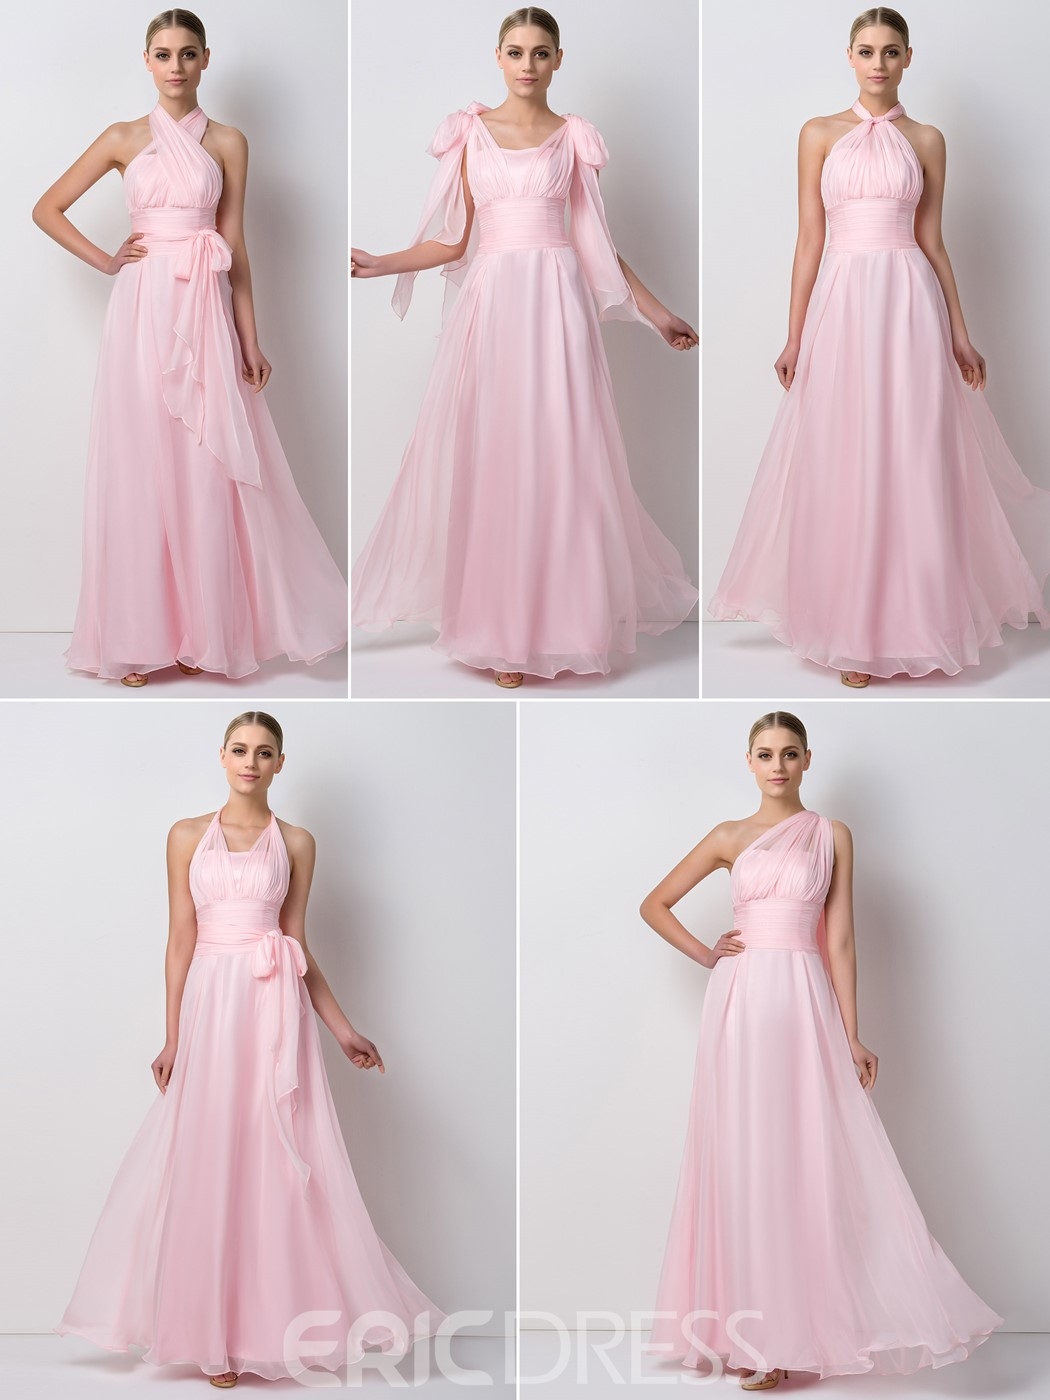 Ericdress Unique Convertible Long Bridesmaid Dress